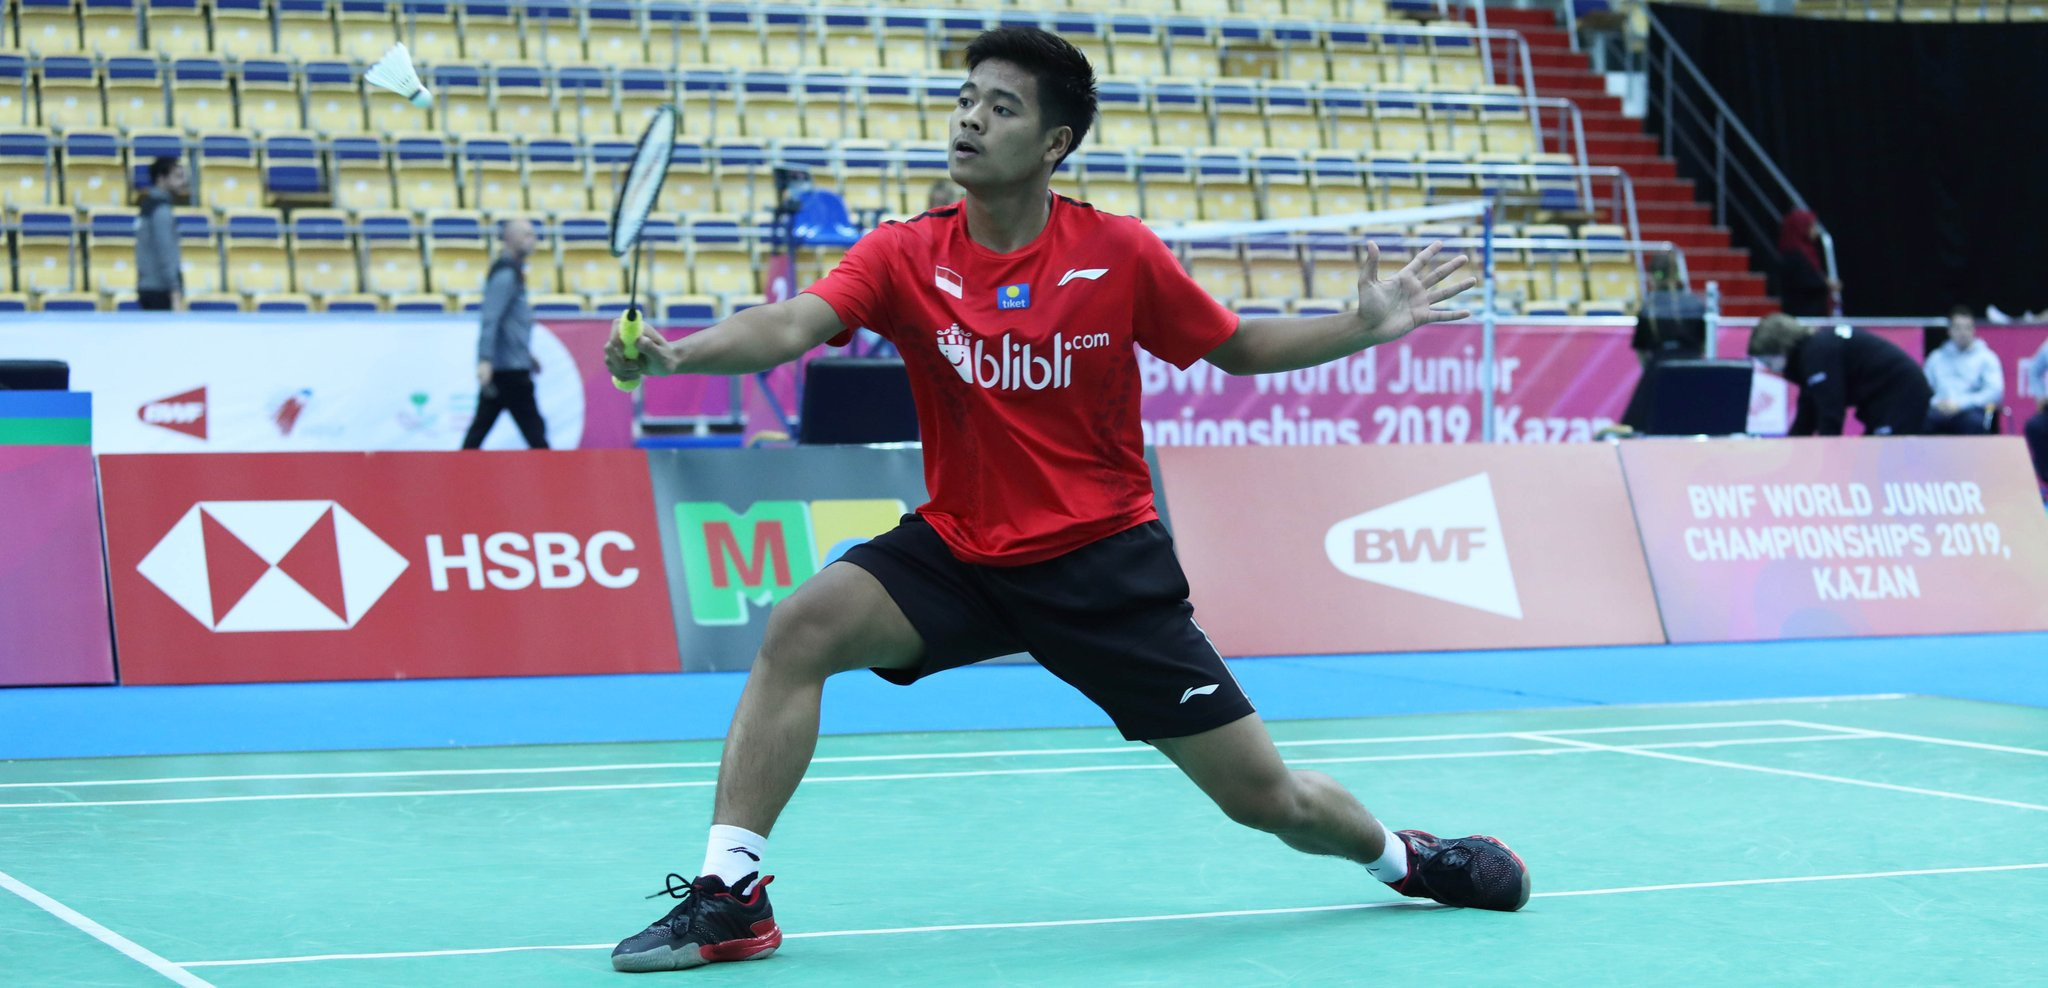 Top seeds Indonesia got off to the perfect start with a crushing 5-0 victory over Uganda ©Twitter